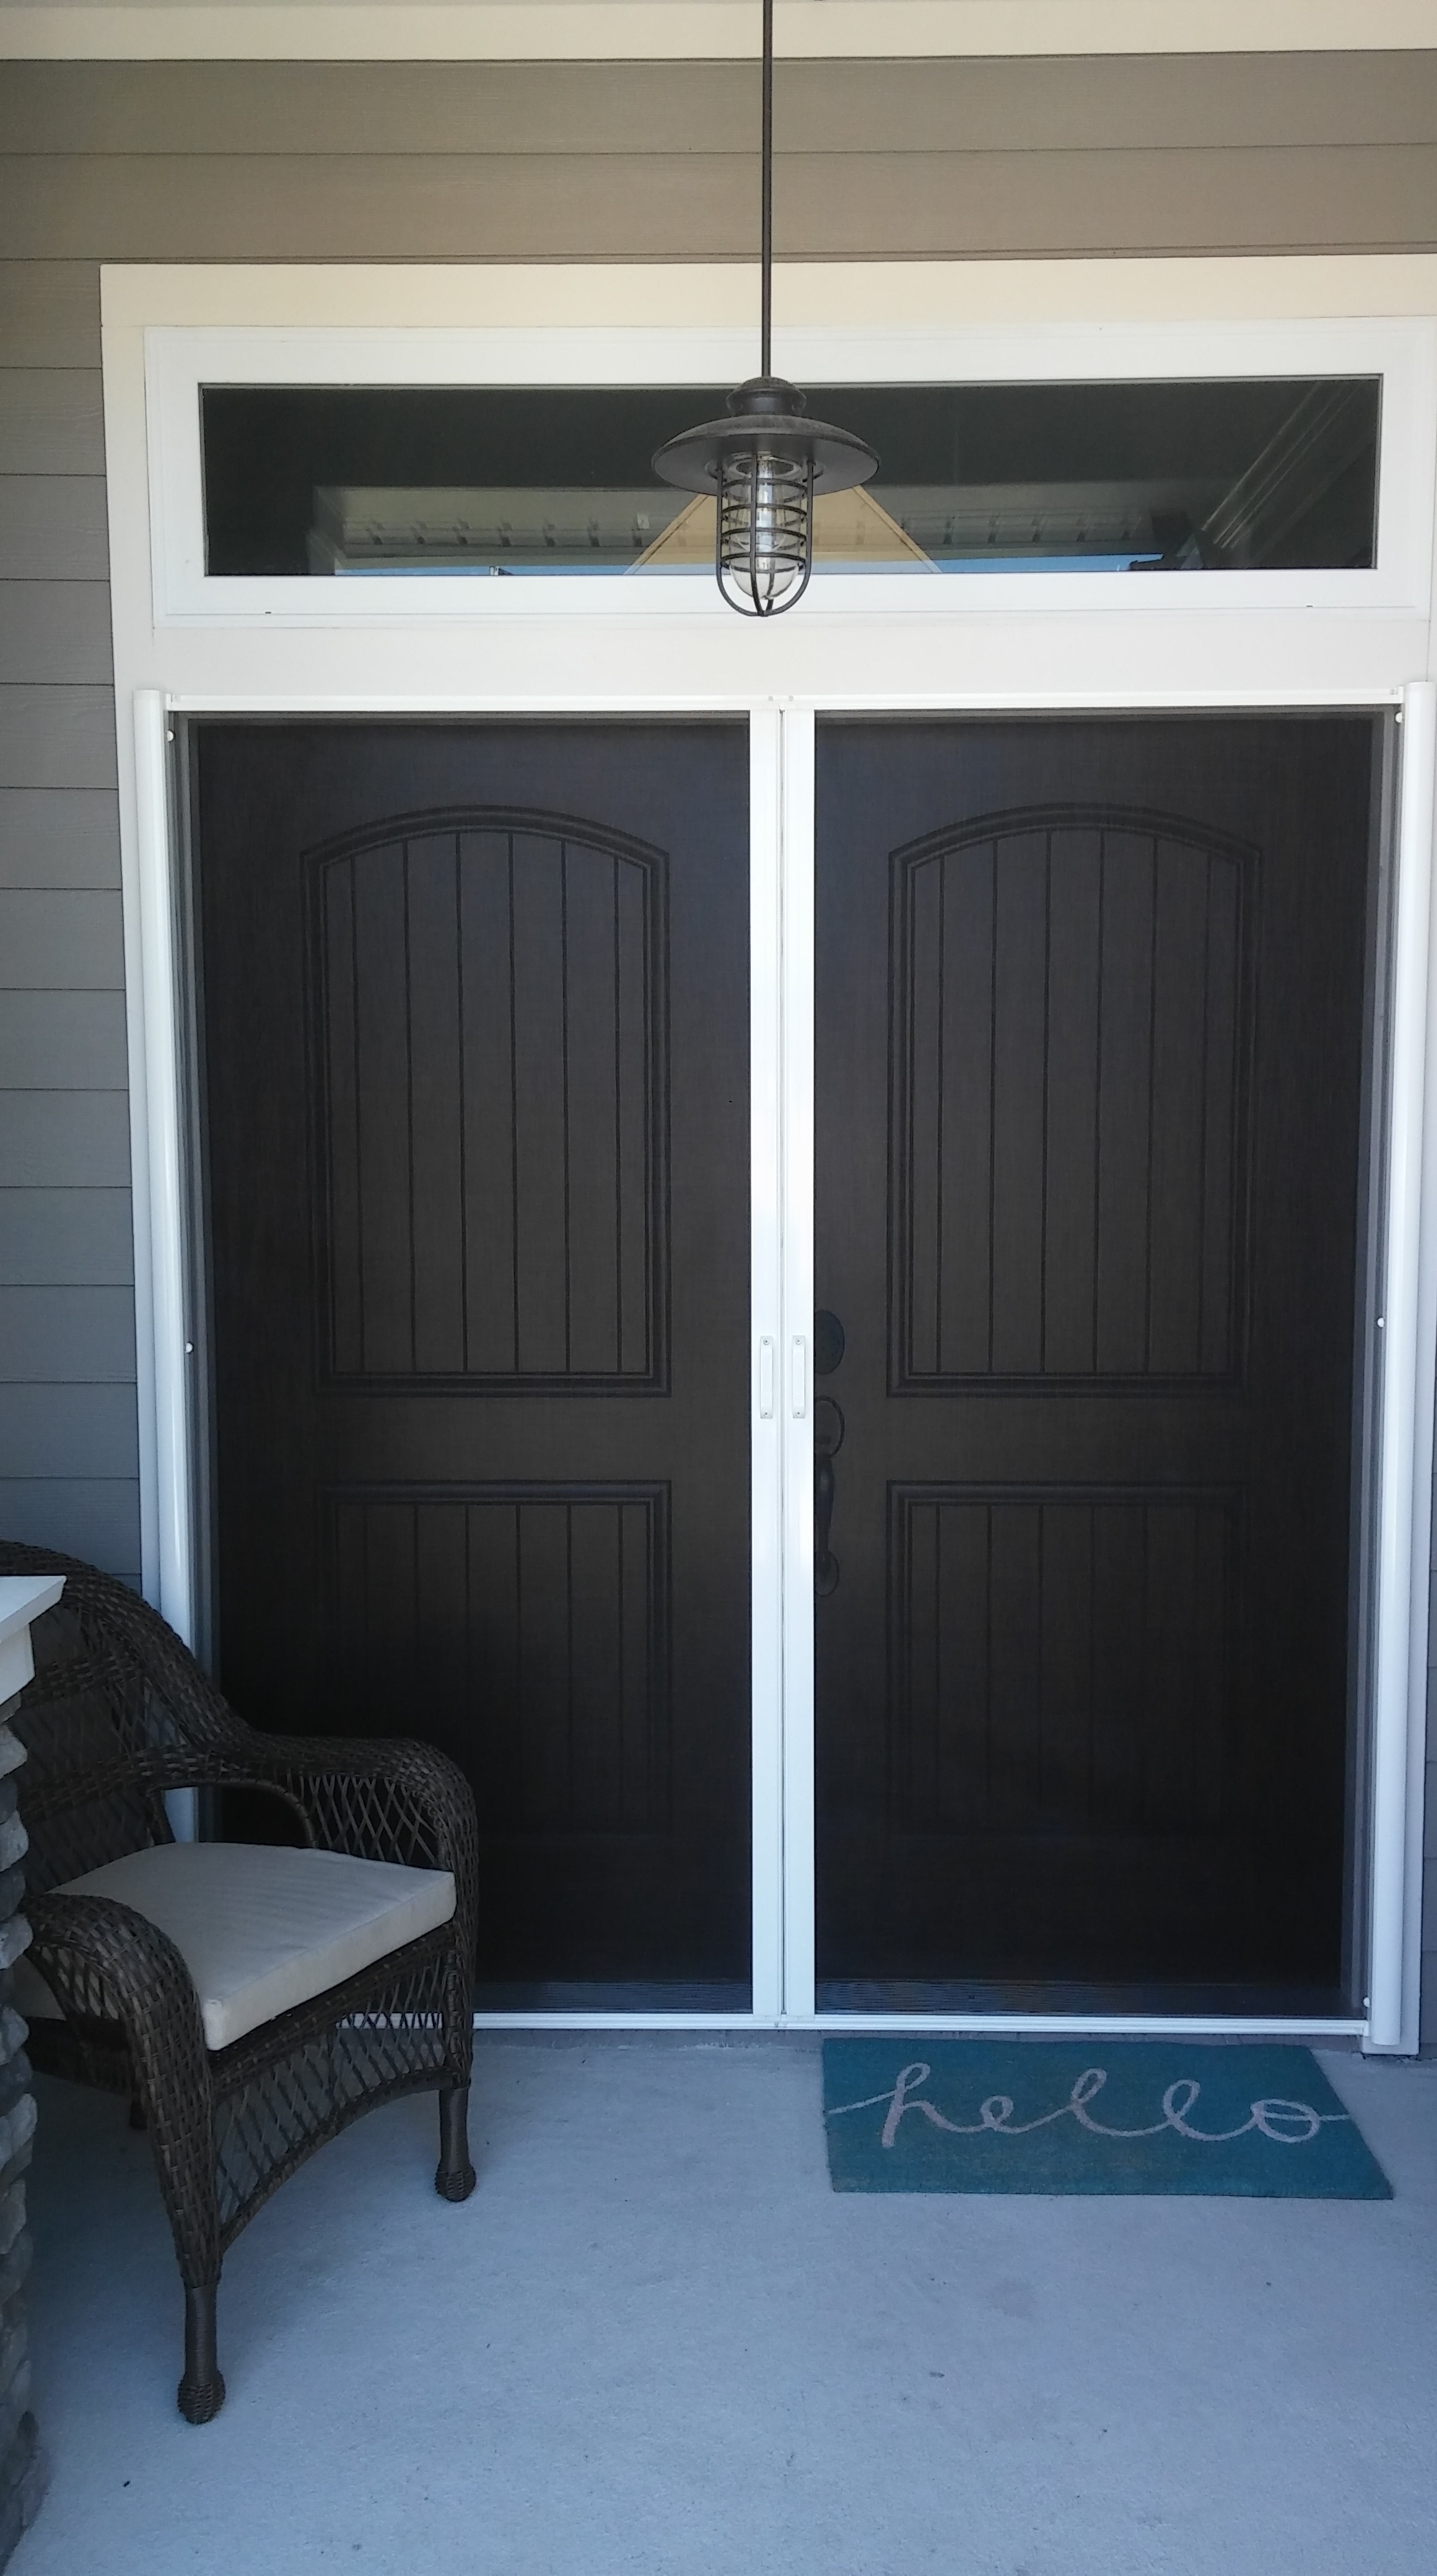 mosquito mafia screen services can provide motorized and manual retractable screens as well as fixed rescreening services for your garage entryways